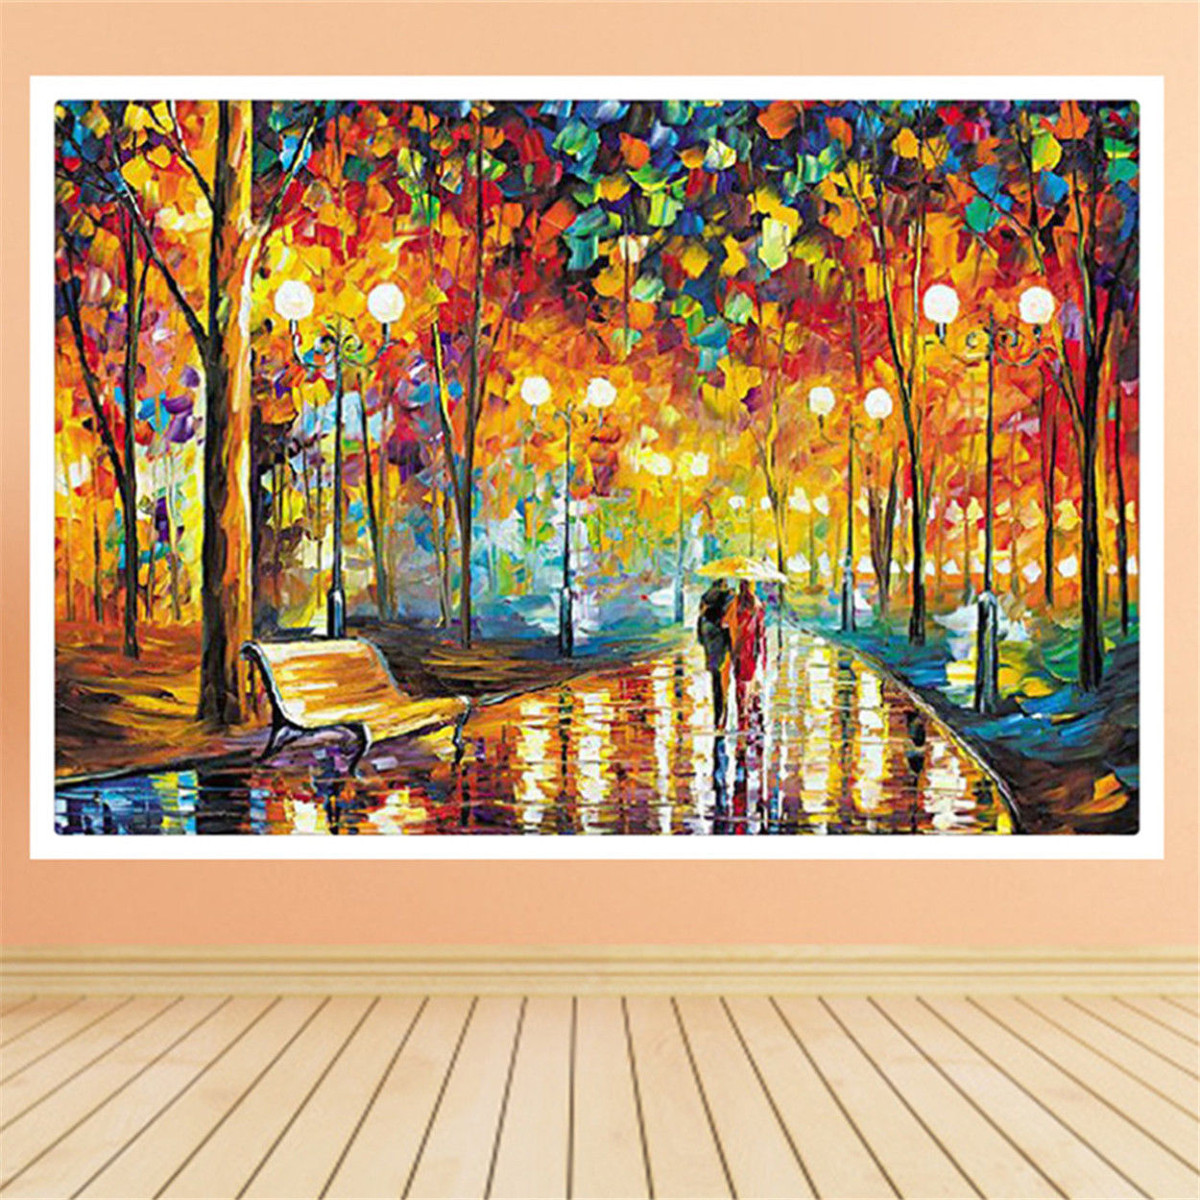 5D Diamond Painting Embroidery Cross Stitch Kit Full Drill DIY Crafts Home Decor